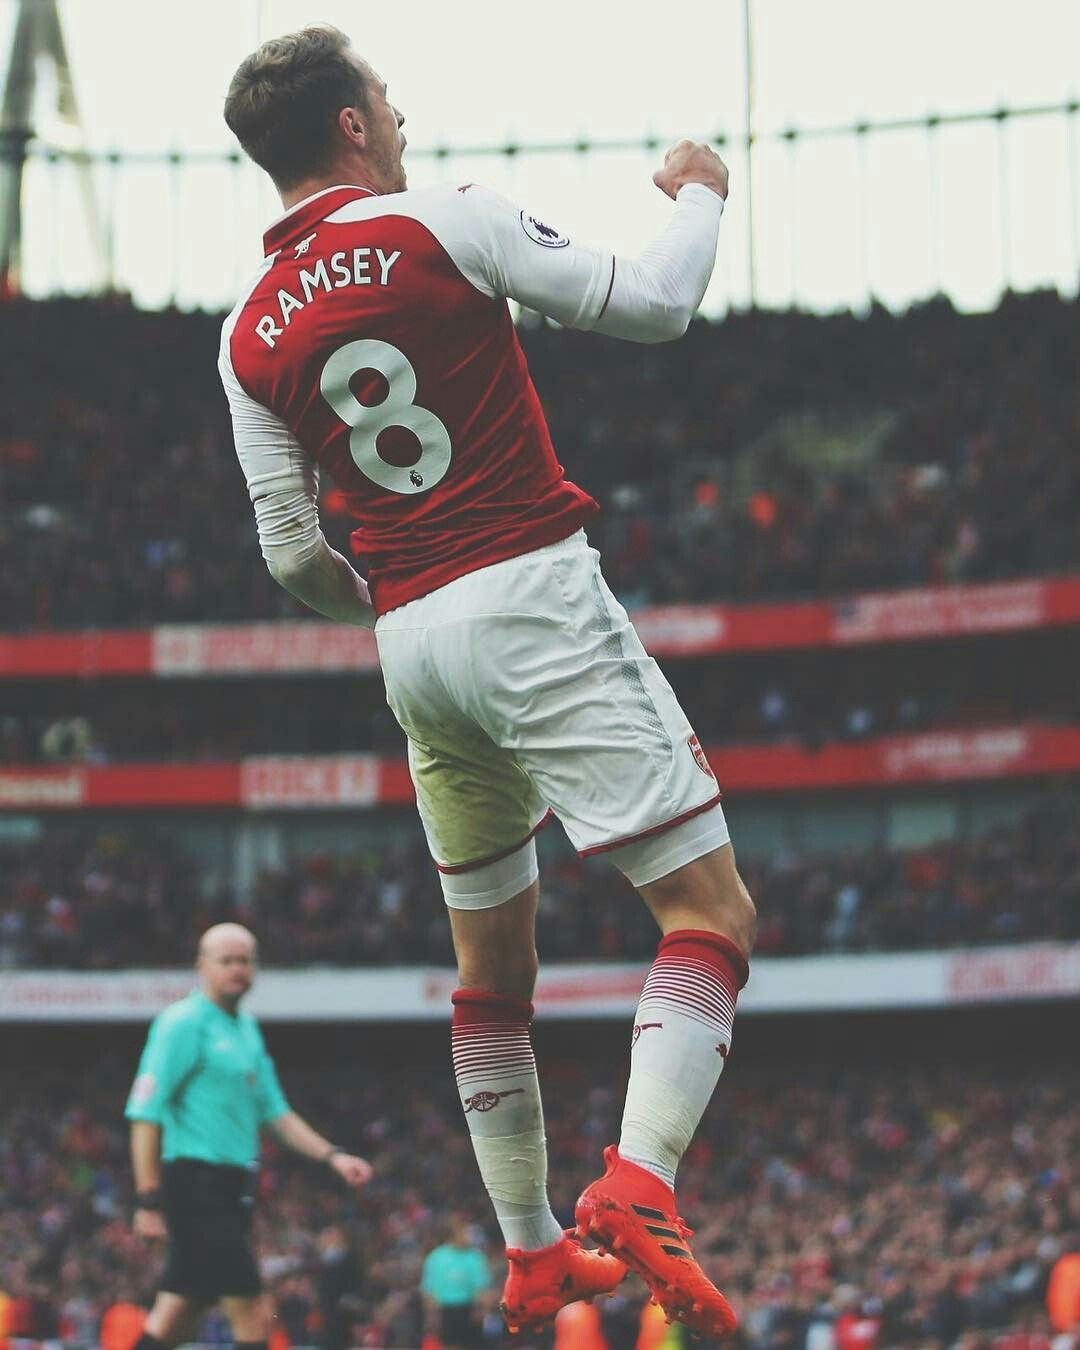 dfab34360527 Discover ideas about Arsenal Football